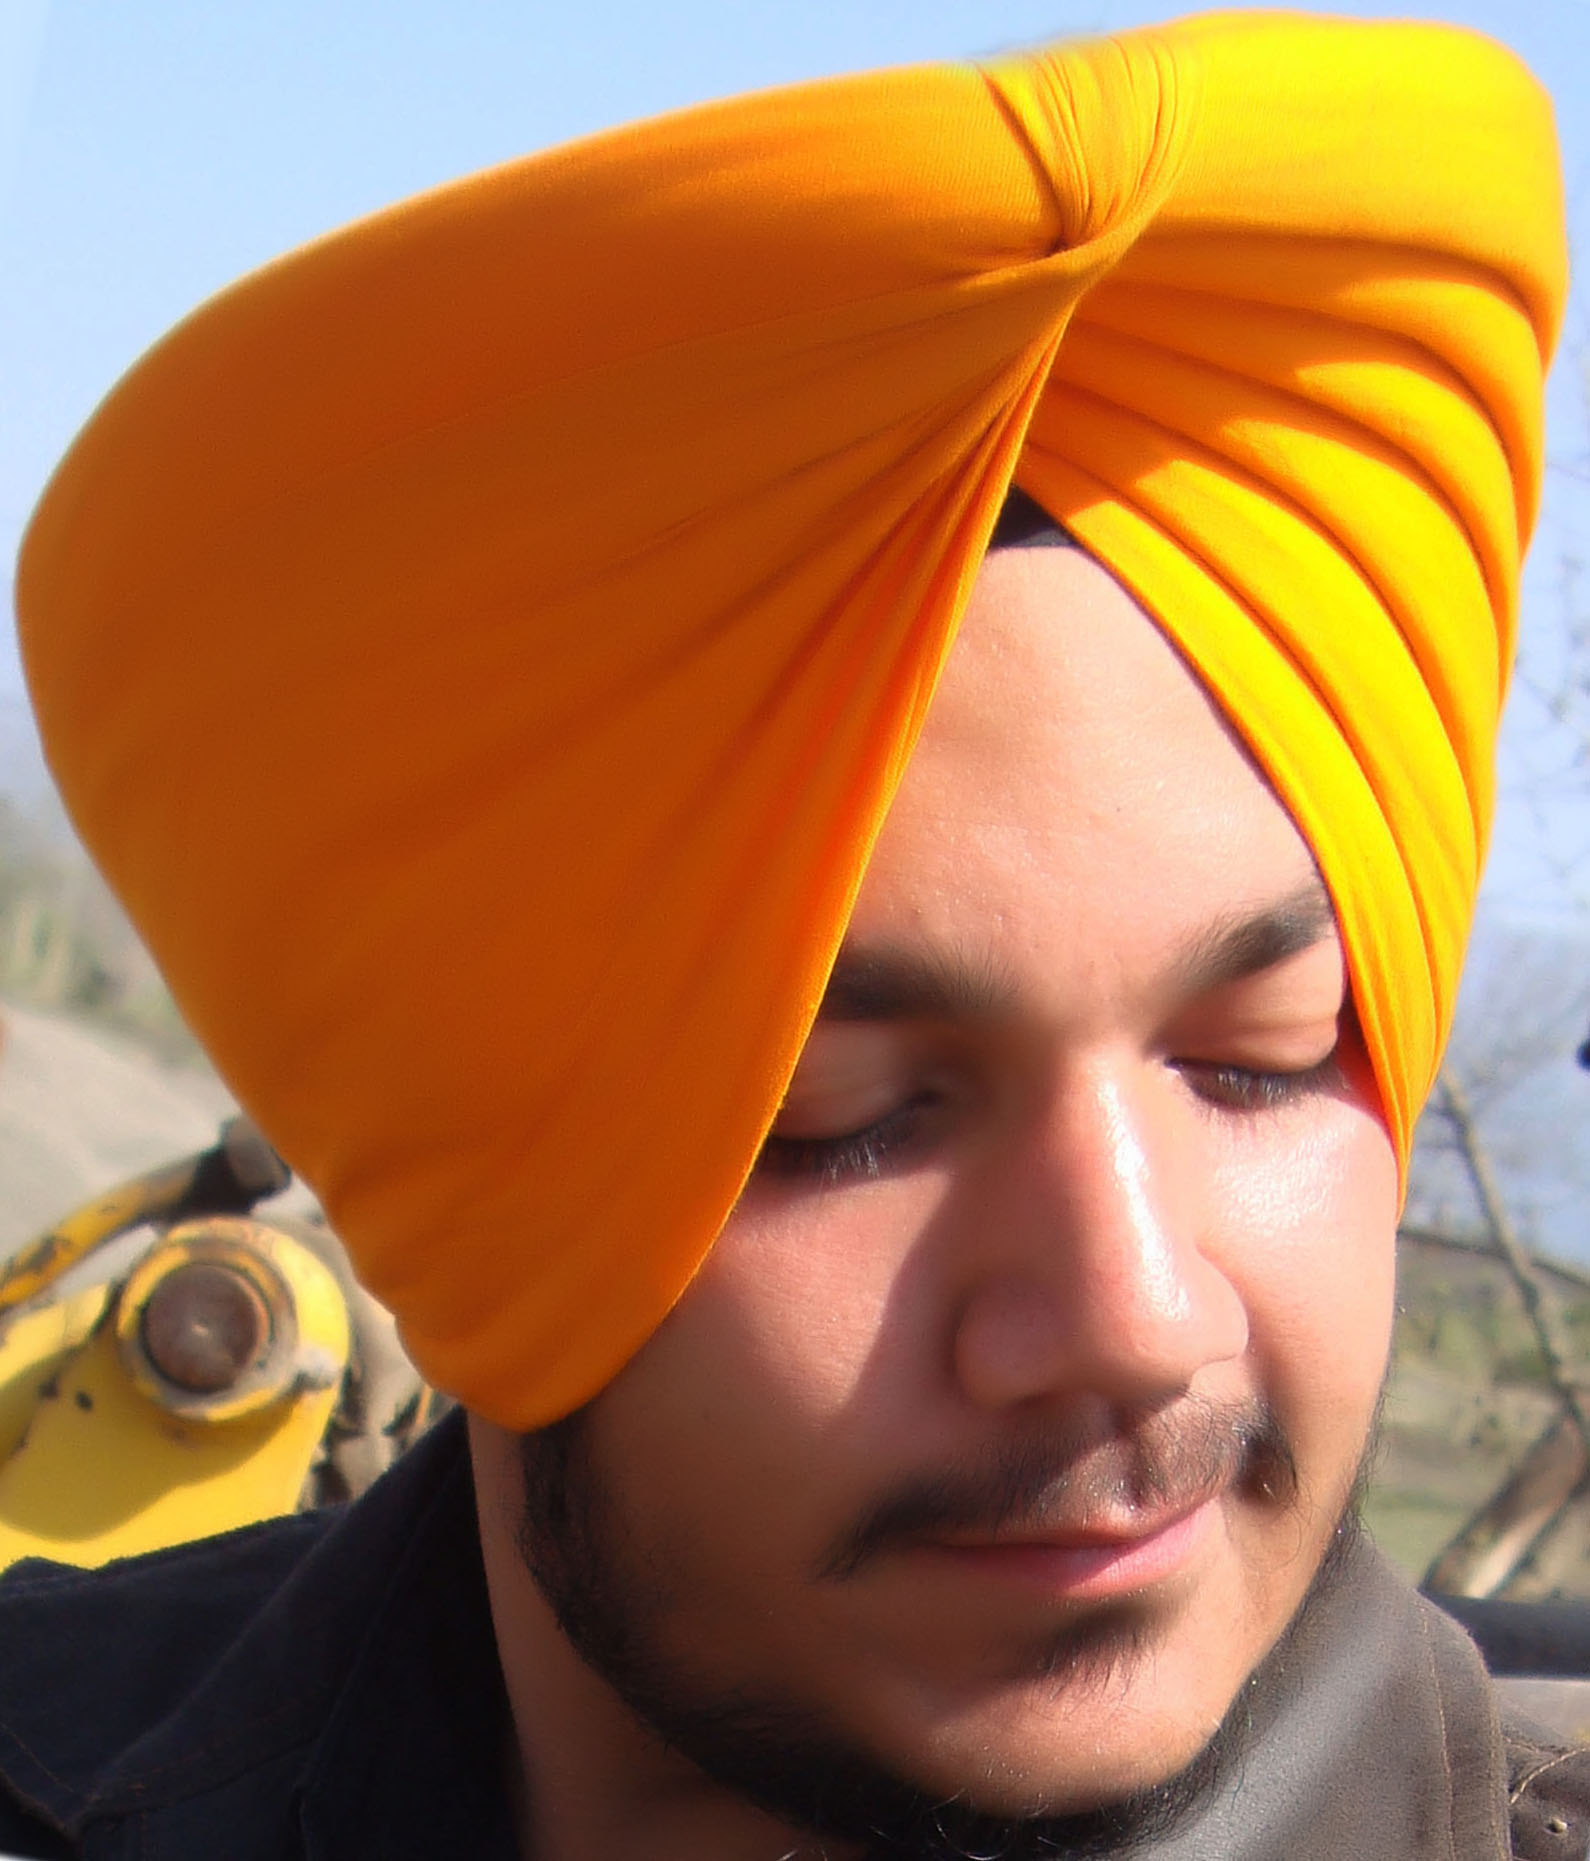 Punjabi Turban http://turbantrainingcentre.wordpress.com/